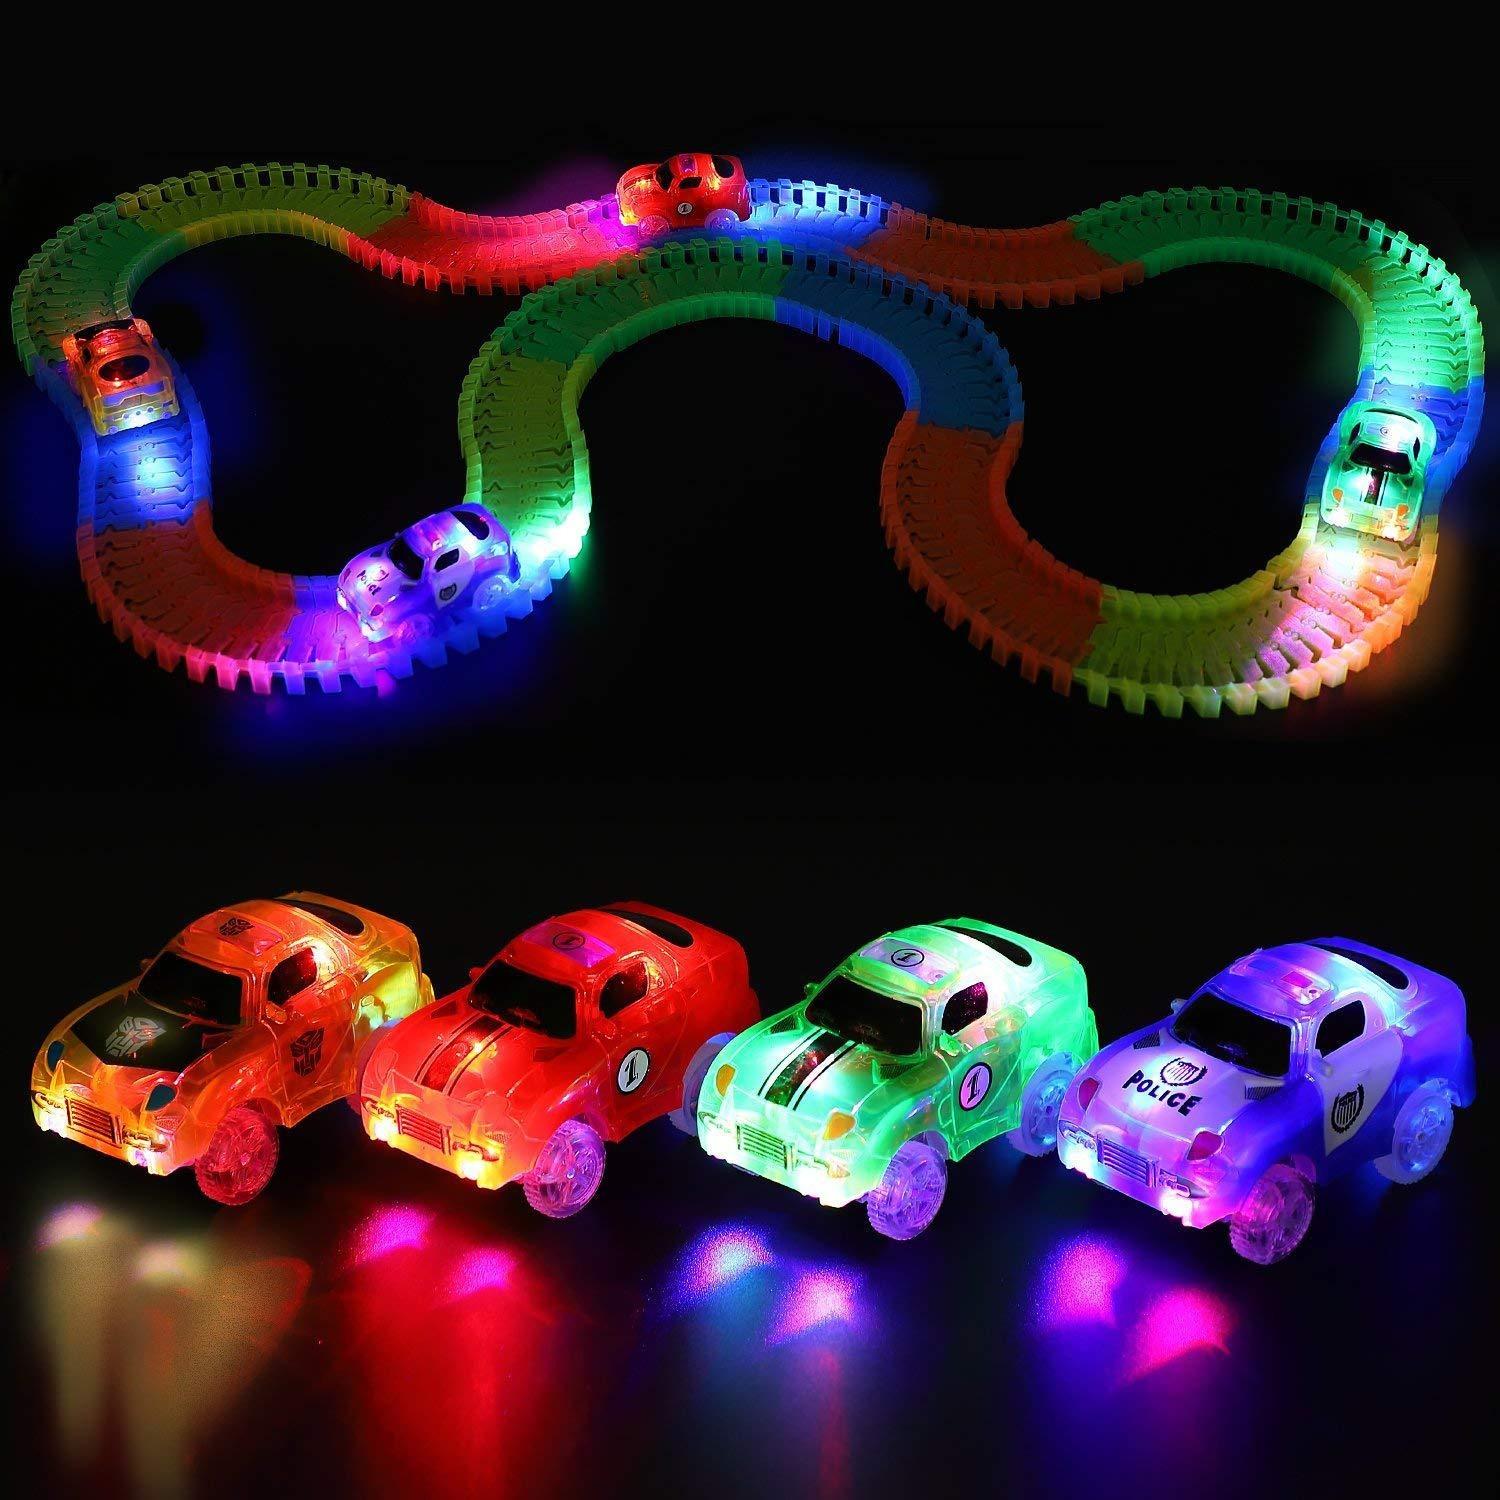 uguetes-electronicos-con-luces-intermit_main-0